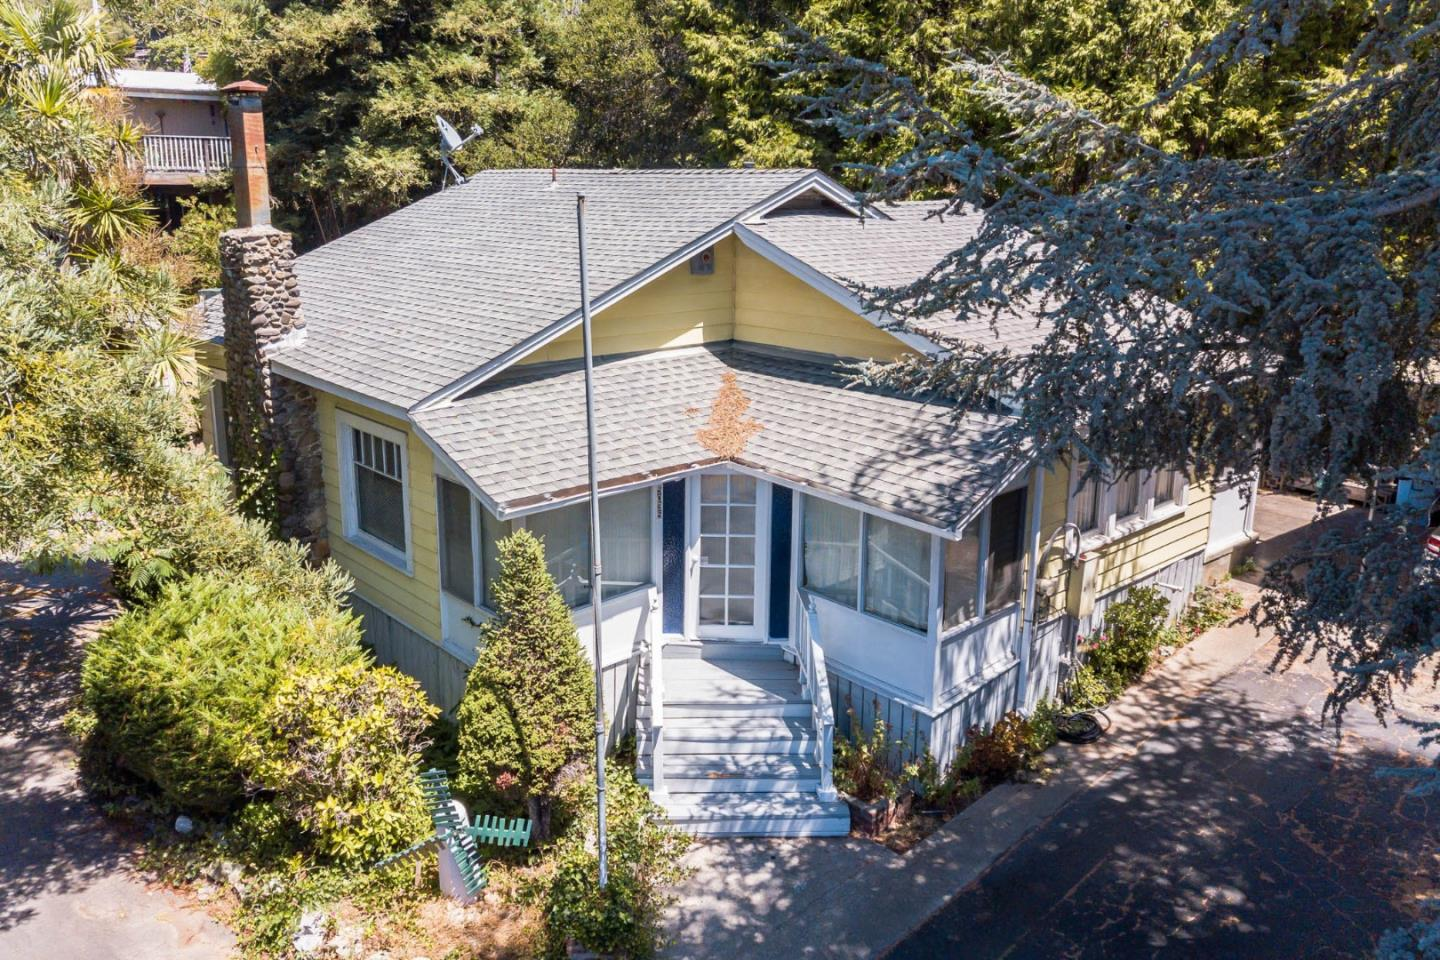 Location and opportunity meet. Great upside potential with this house. It is located walking distance to downtown Soquel and Main Street. Soquel has shops, restaurants and antique shops along Soquel Drive and Main Street. The location puts you within walking distance to so many great places and to local elementary and high schools. Great commute location as Old San Jose Road is less than half a mile away. 10,542 Square foot lot allows for room to expand for someone with ideas and allows for this home to be made into something amazing. The home is set back far enough off of Soquel Drive to still feel private.